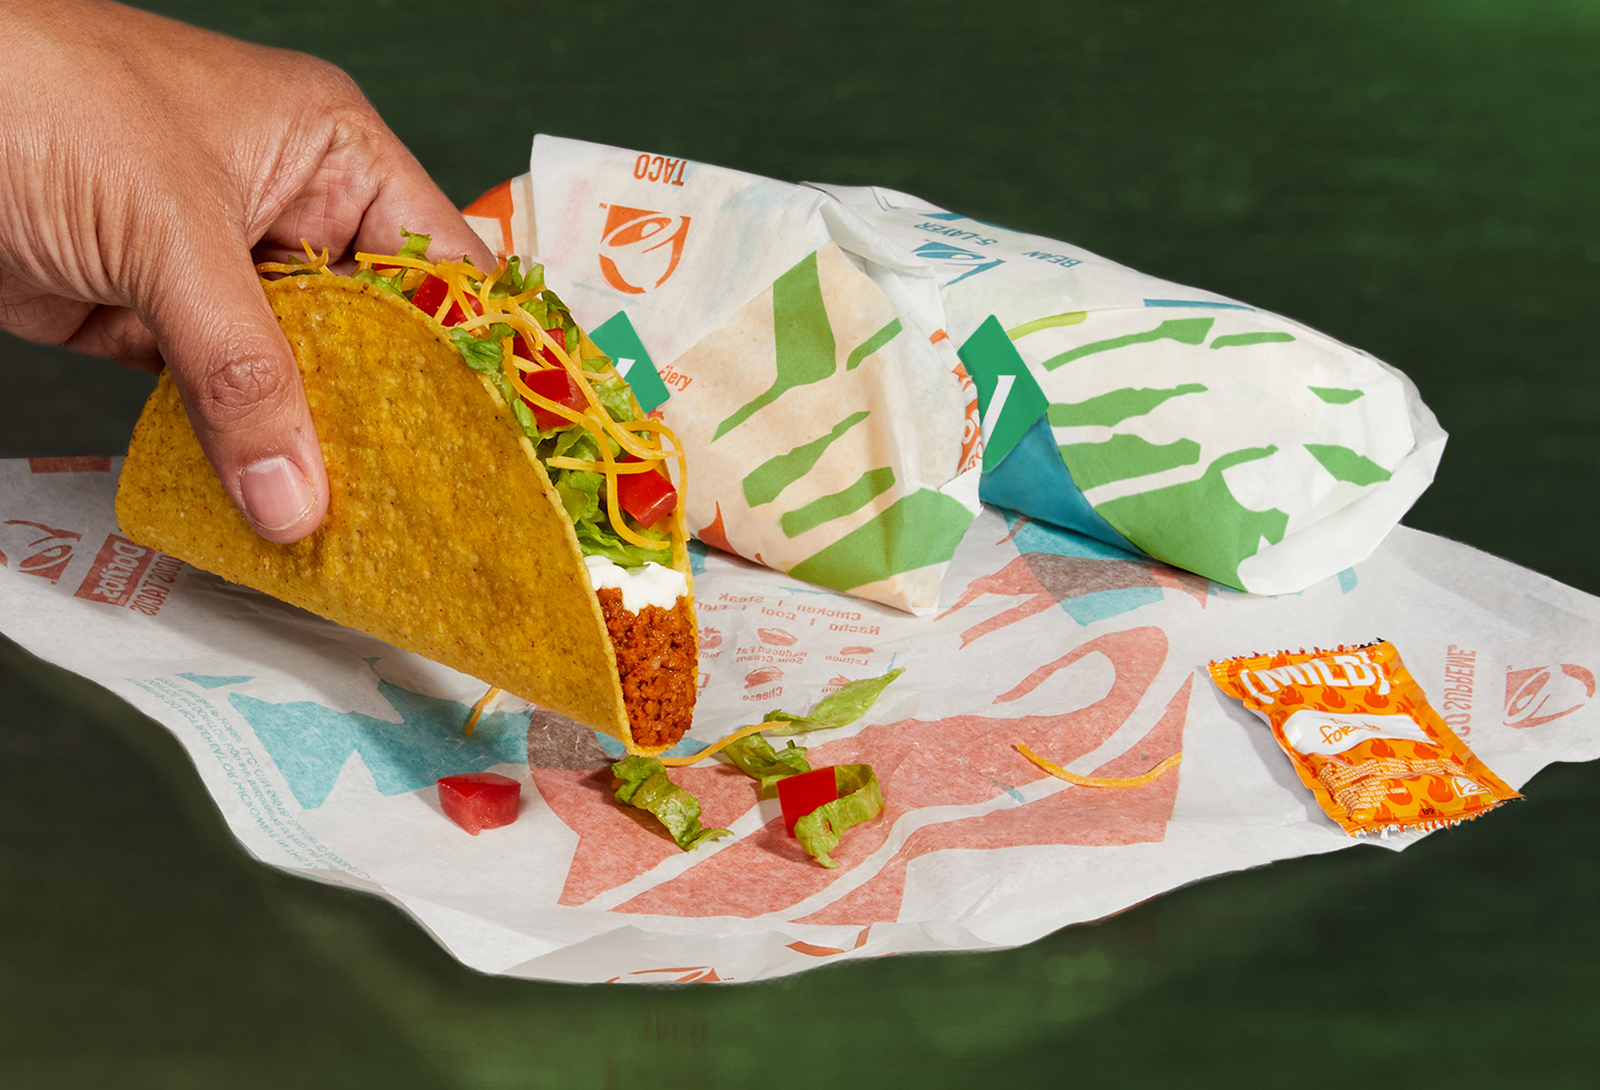 Taco Bell is testing a new meat alternative